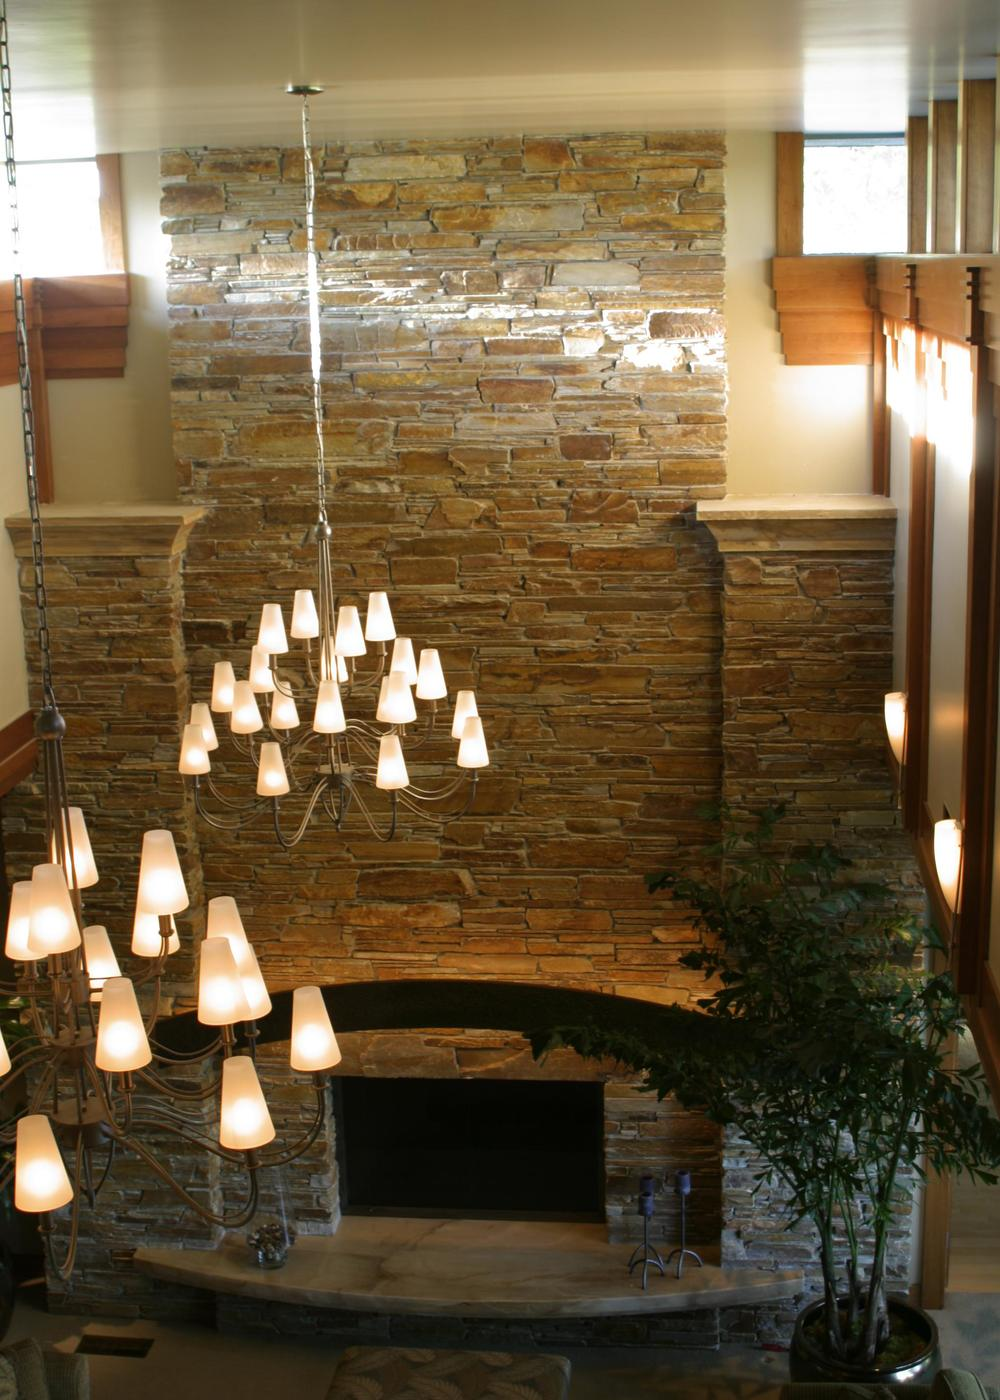 View of fireplace from Recreation Room.